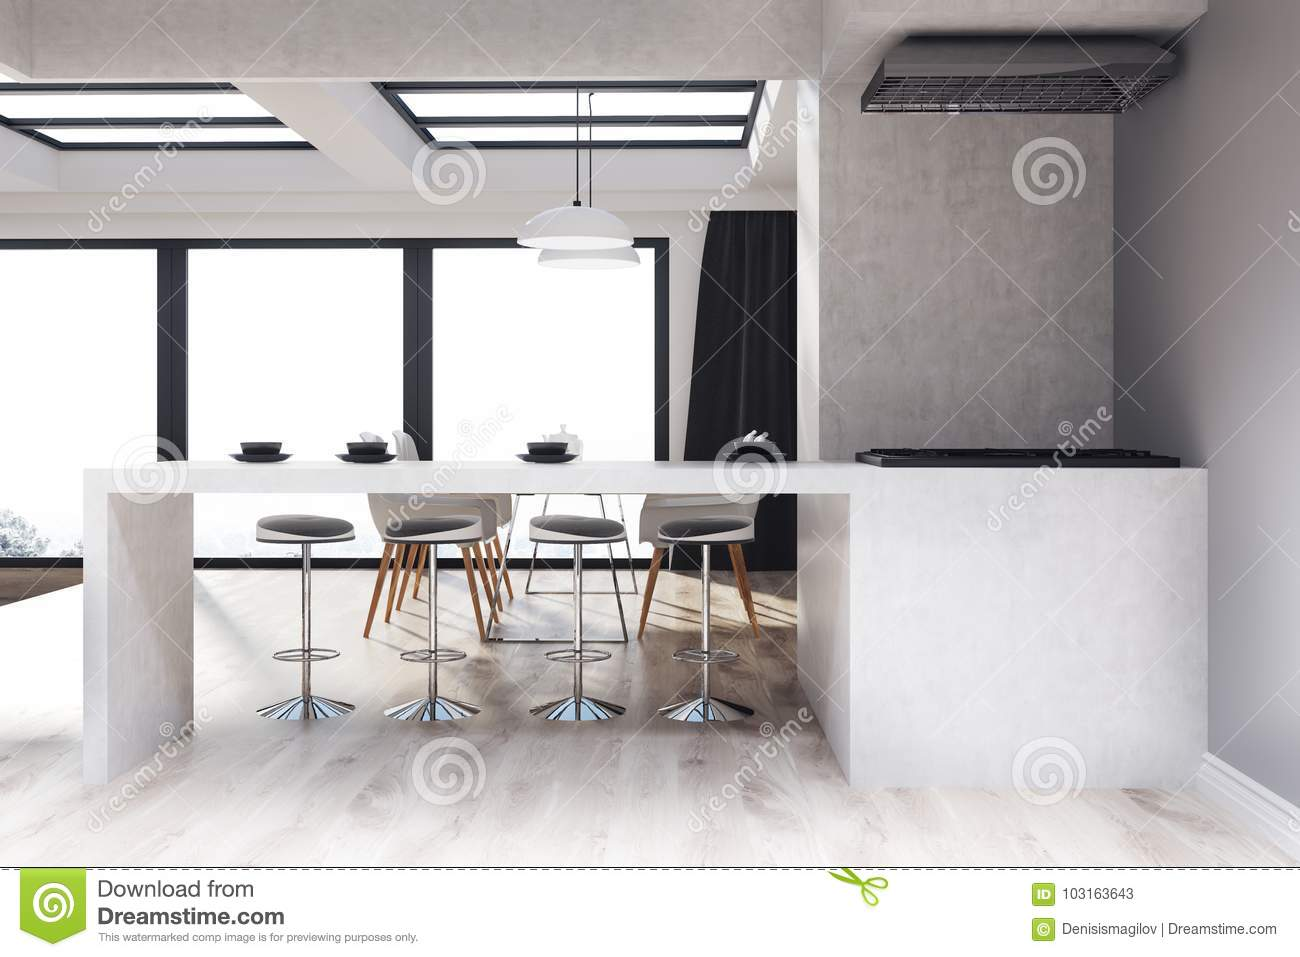 Kitchen Interior With Gray And Concrete Walls A Dining Table Cahirs Bar Stand Stools Wooden Floor 3d Rendering Mock Up